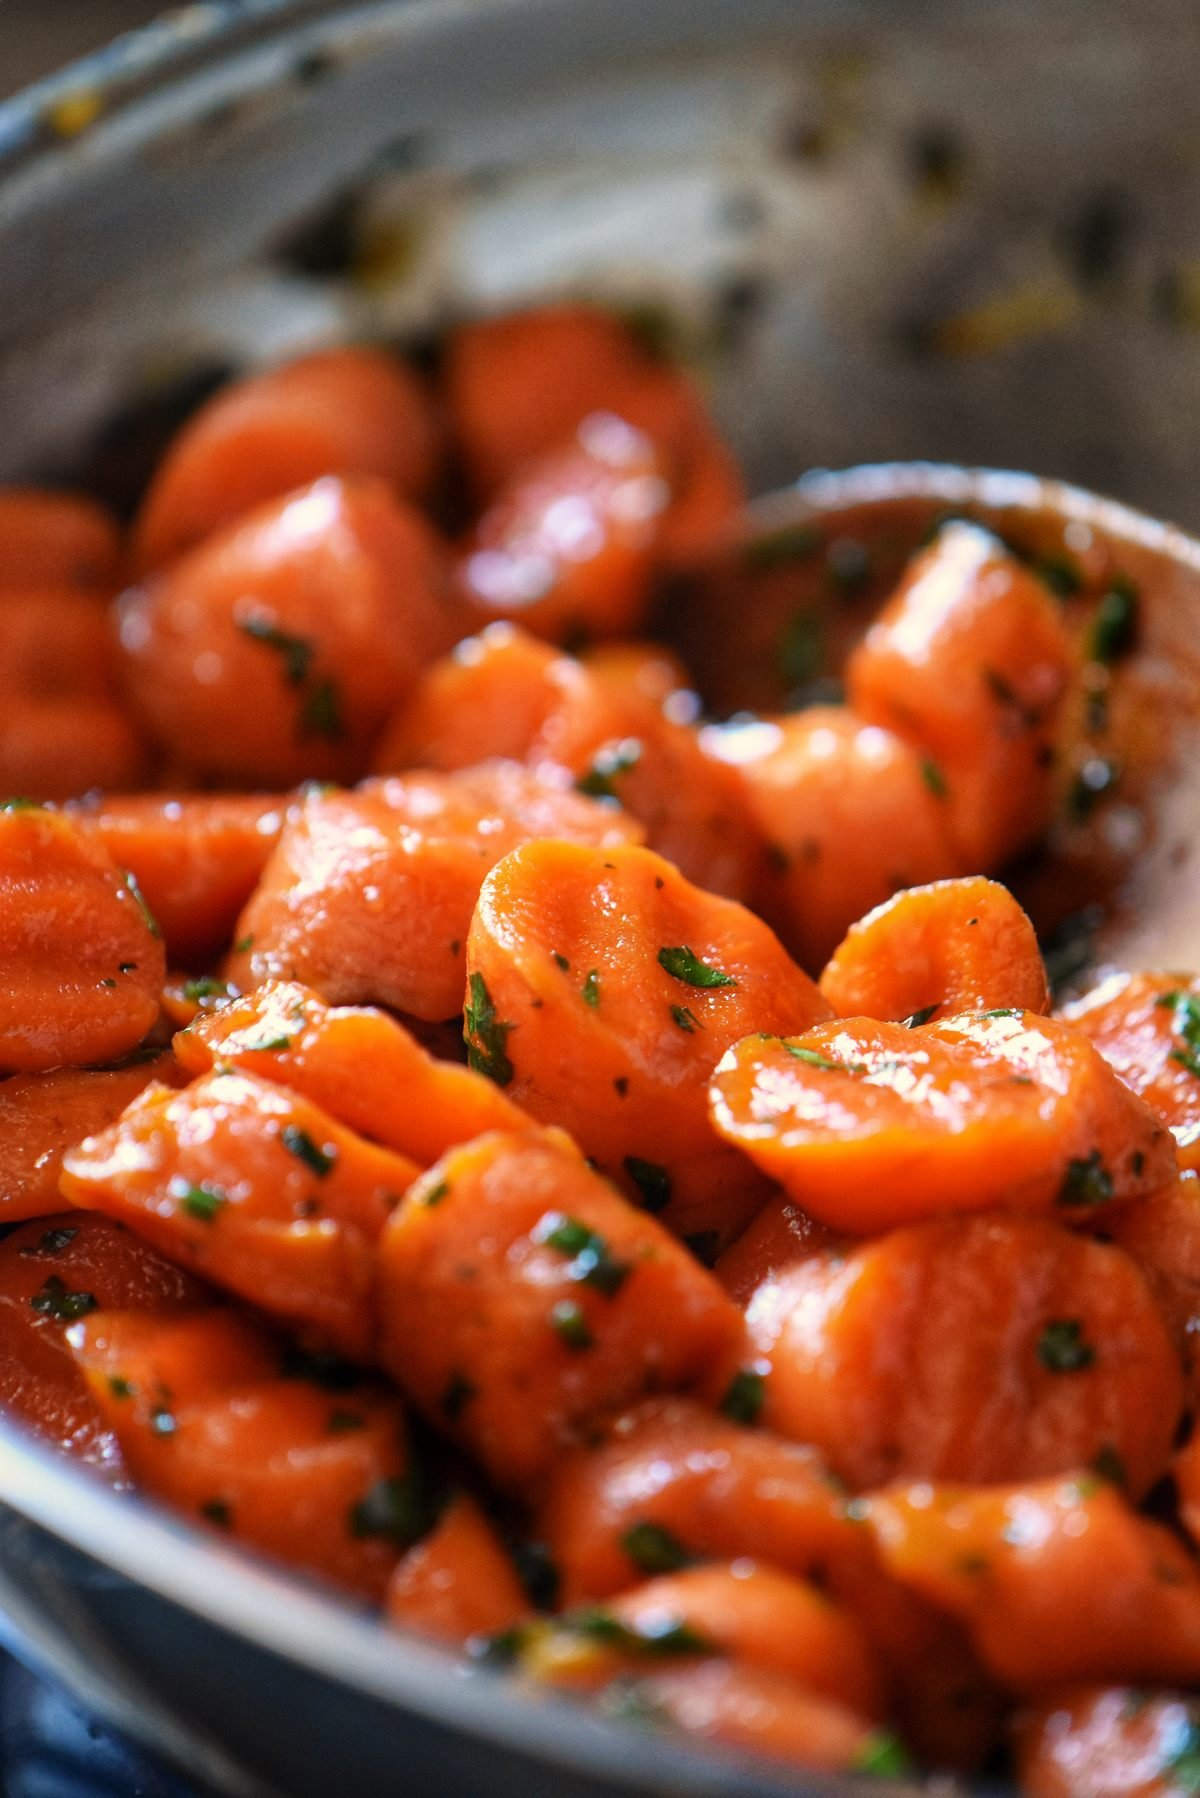 Glazed carrots in a large frying pan.